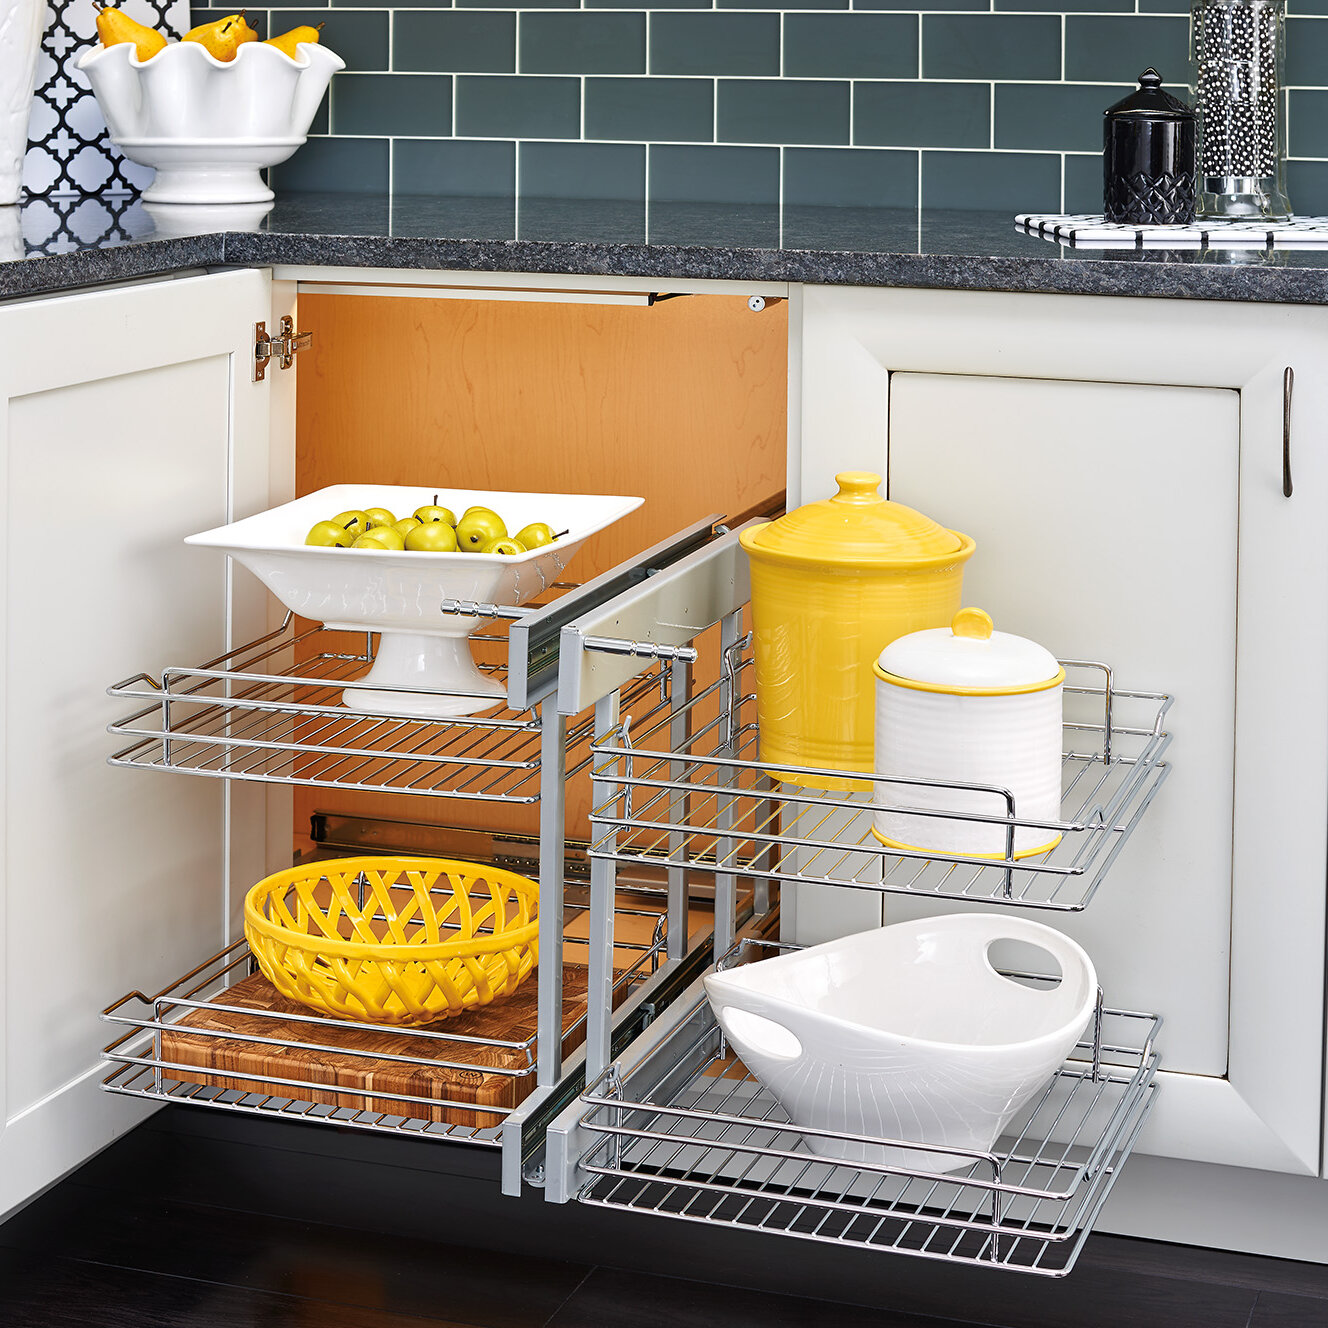 cr two pull w shelf rev dp out in cookware chrome basket a home kitchen d com cabinet tier x wire amazon base organizer